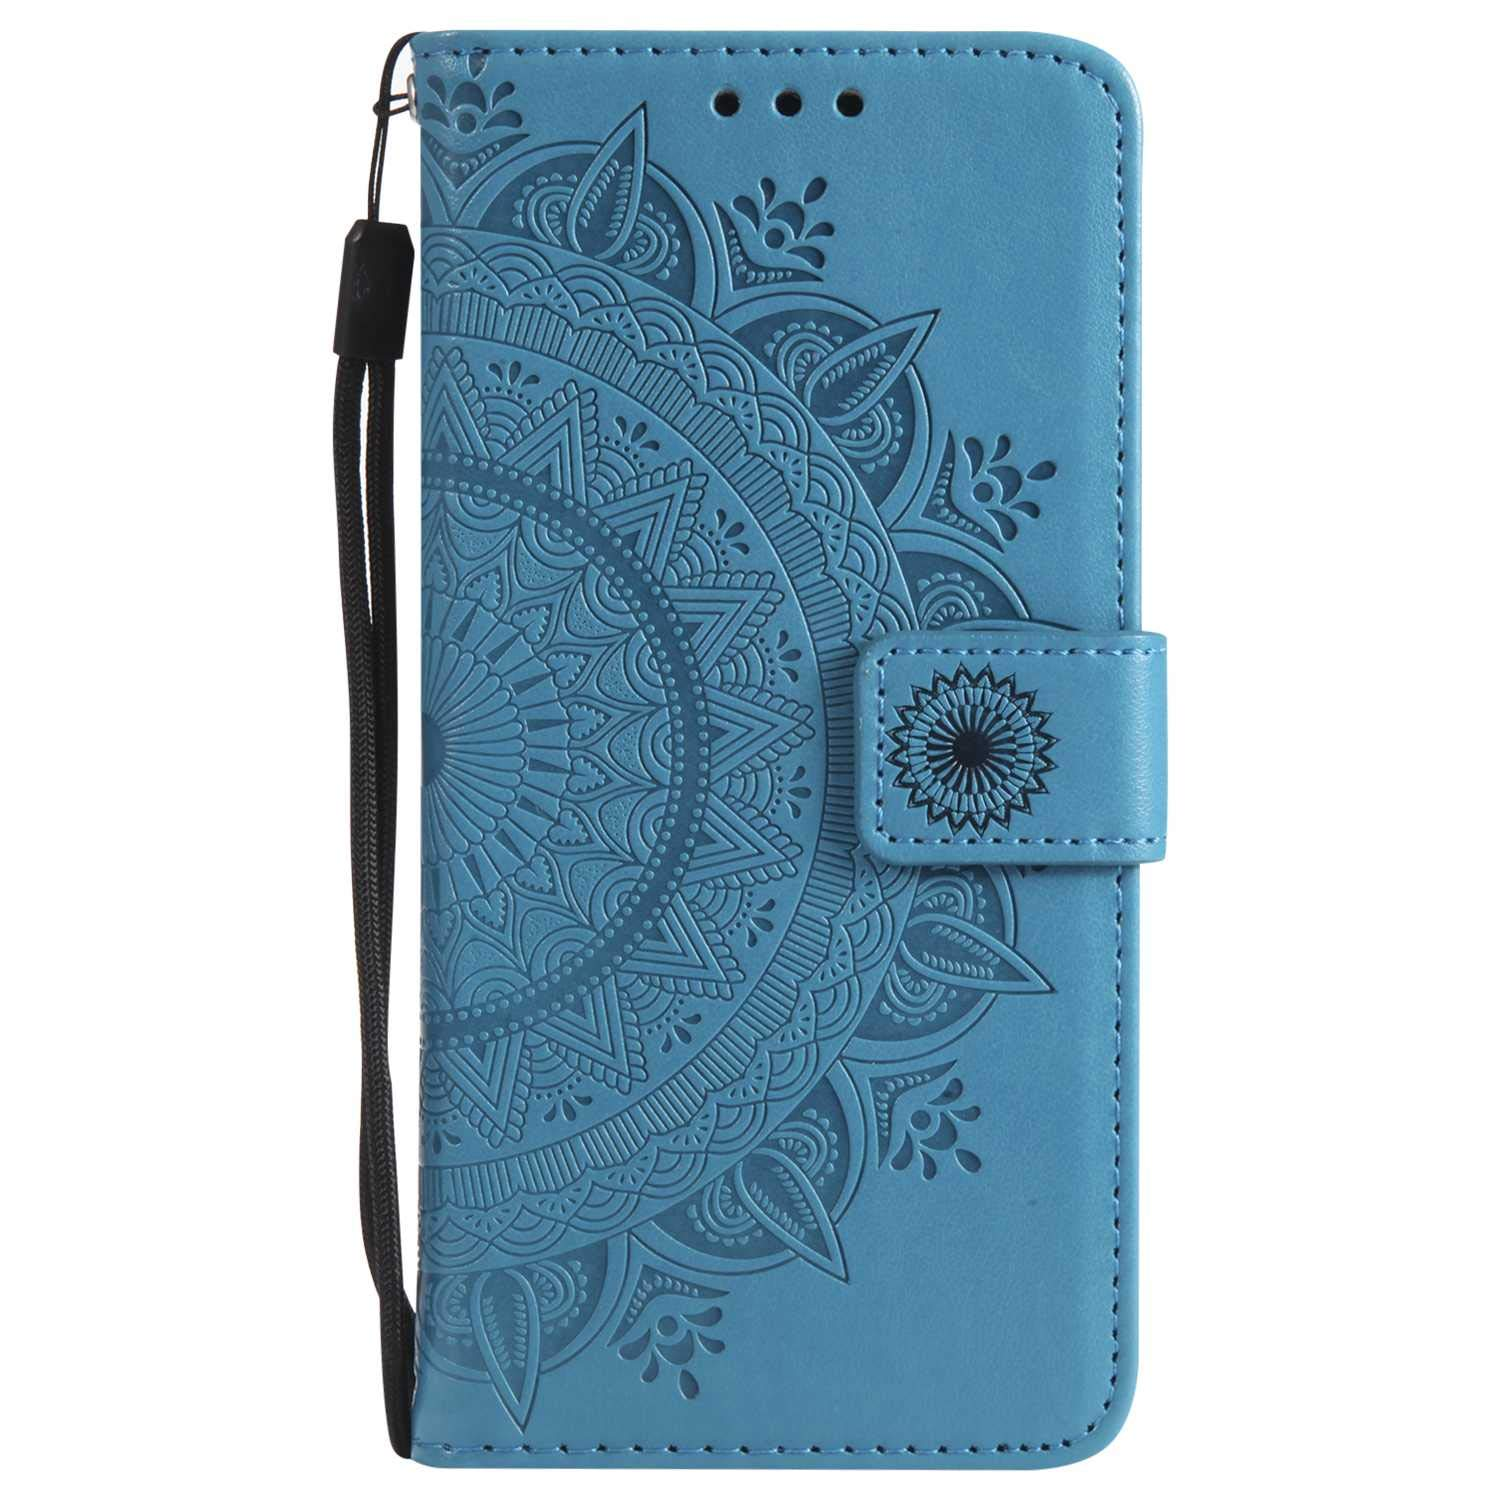 iPhone 7 8 Case, The Grafu Leather Case, Premium Wallet Case with [Card Slots] [Kickstand Function] Flip Notebook Cover for Apple iPhone 7/8, Blue